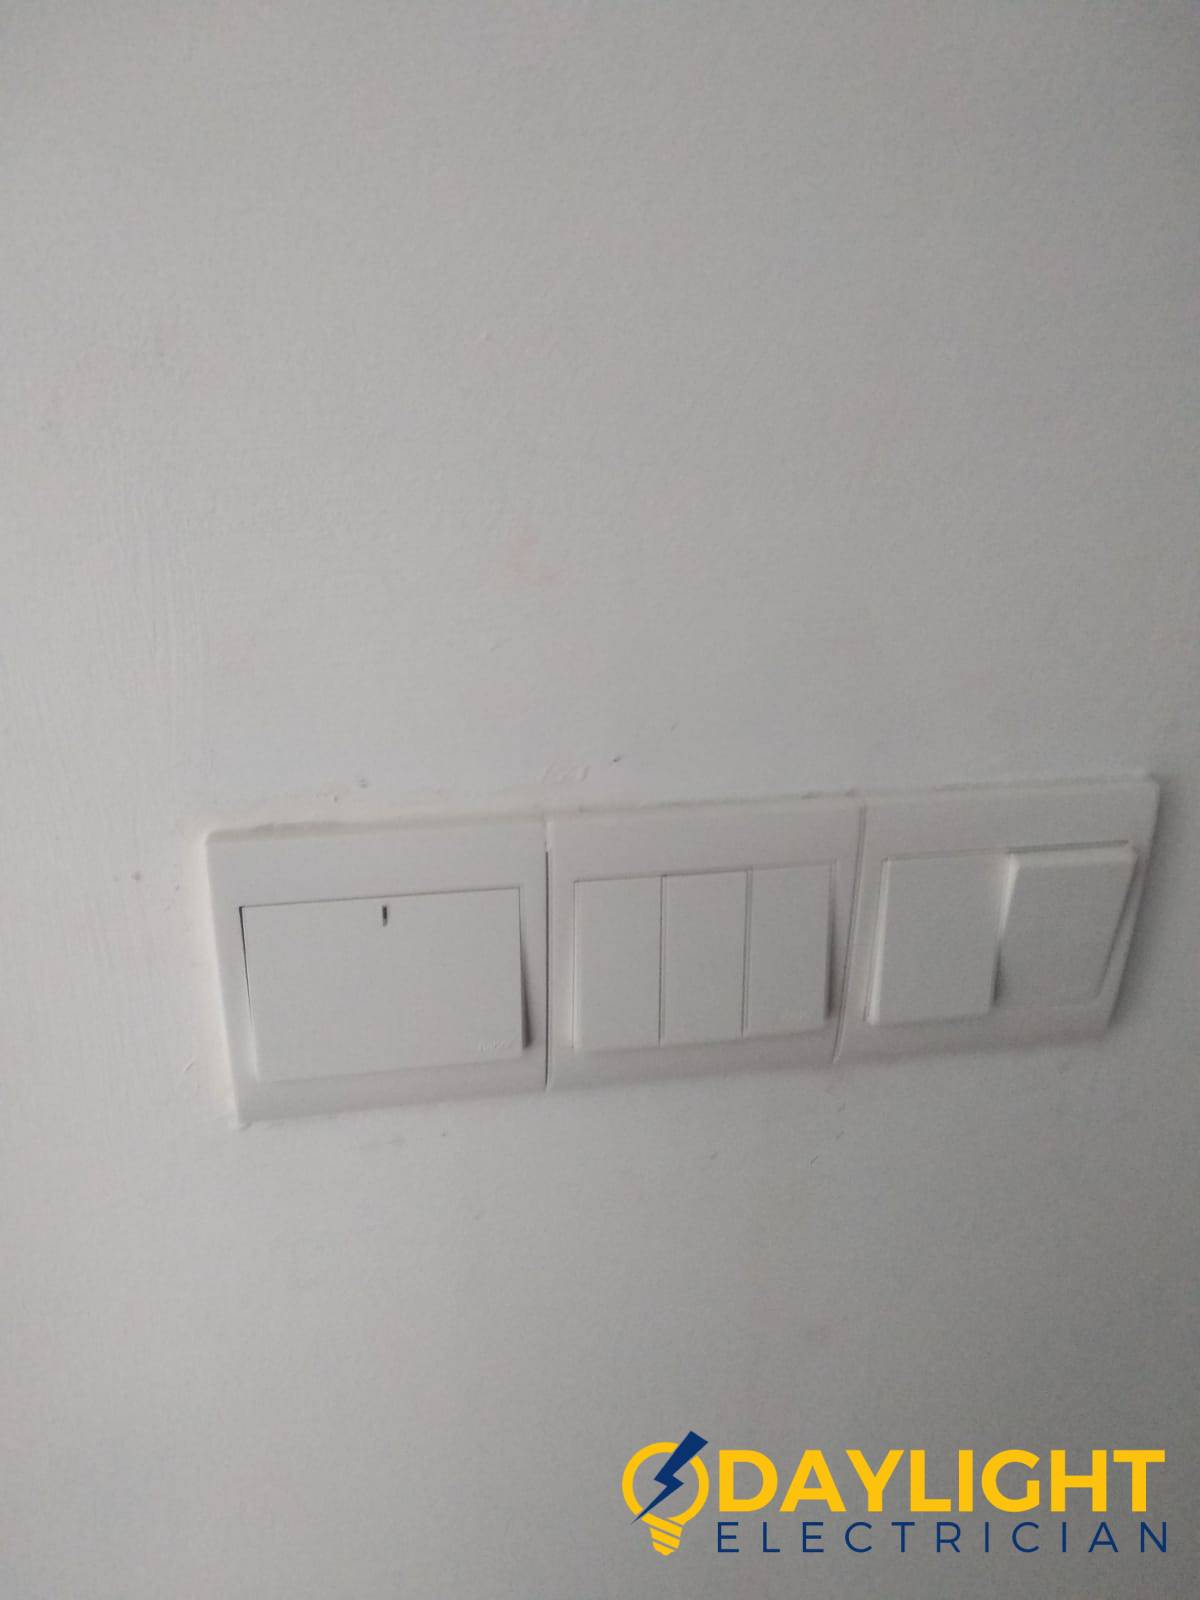 light-switch-replacement-light-switch-services-electrician-singapore-condo-toa-payoh-2